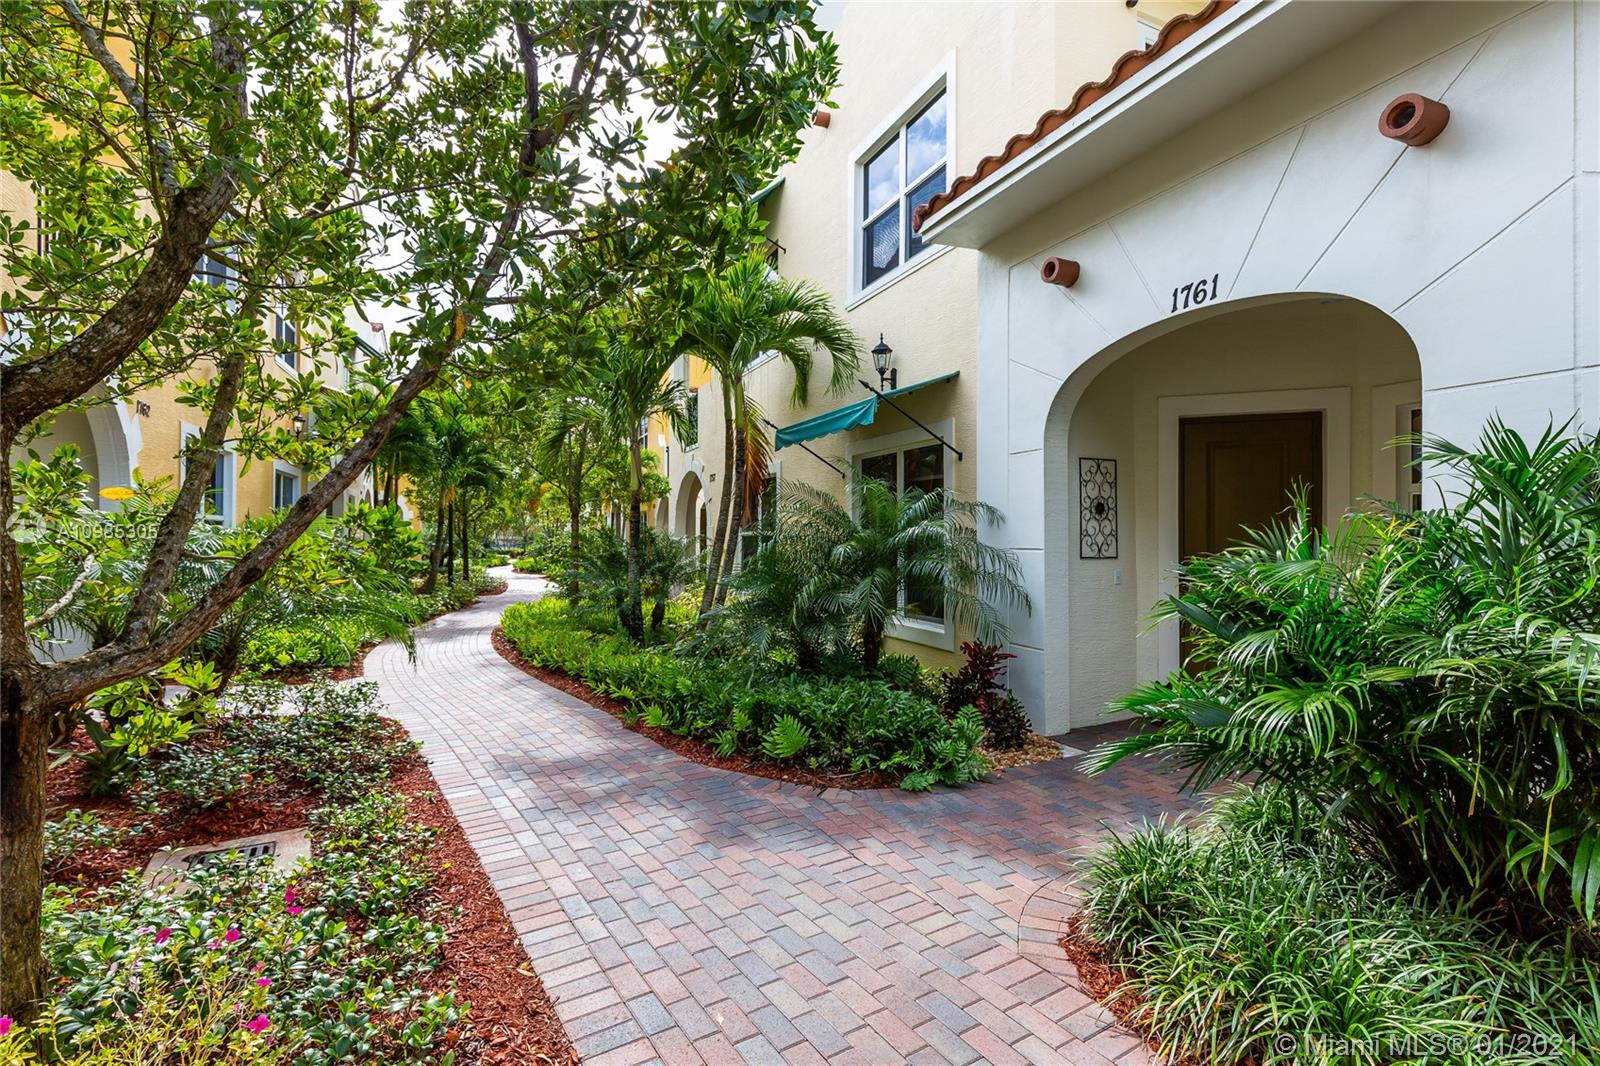 Feel right at home in this PRISTINE 4 bed, 3.5 bath, tri-level COSMO MODEL TOWNHOUSE w/attached 2 car GARAGE in desired Centra Falls GATED community LOCATED near major highways, shopping & MEDICAL CENTERS. This Spectacular main level OPEN FLOOR plan features a spacious family & living room that opens to a beautiful contemporary kitchen w/SS appliances; granite countertop & snack bar. Half bath and large under-stairs storage makes a nice PET room. 2nd LEVEL features a MASTER BEDROOM W/BALCONY, walk-in closet and master bath; other two bedrooms, laundry and 2ND FULL BATH. The 3rd LEVEL is breathtaking...Place of preference: your 4th bedroom or flex space for ENTERTAINMENT or OFFICE; 3RD FULL BATH and spacious BALCONY. Impact Windows, Alarm, steps away to POOL, HOT TUB & GYM.